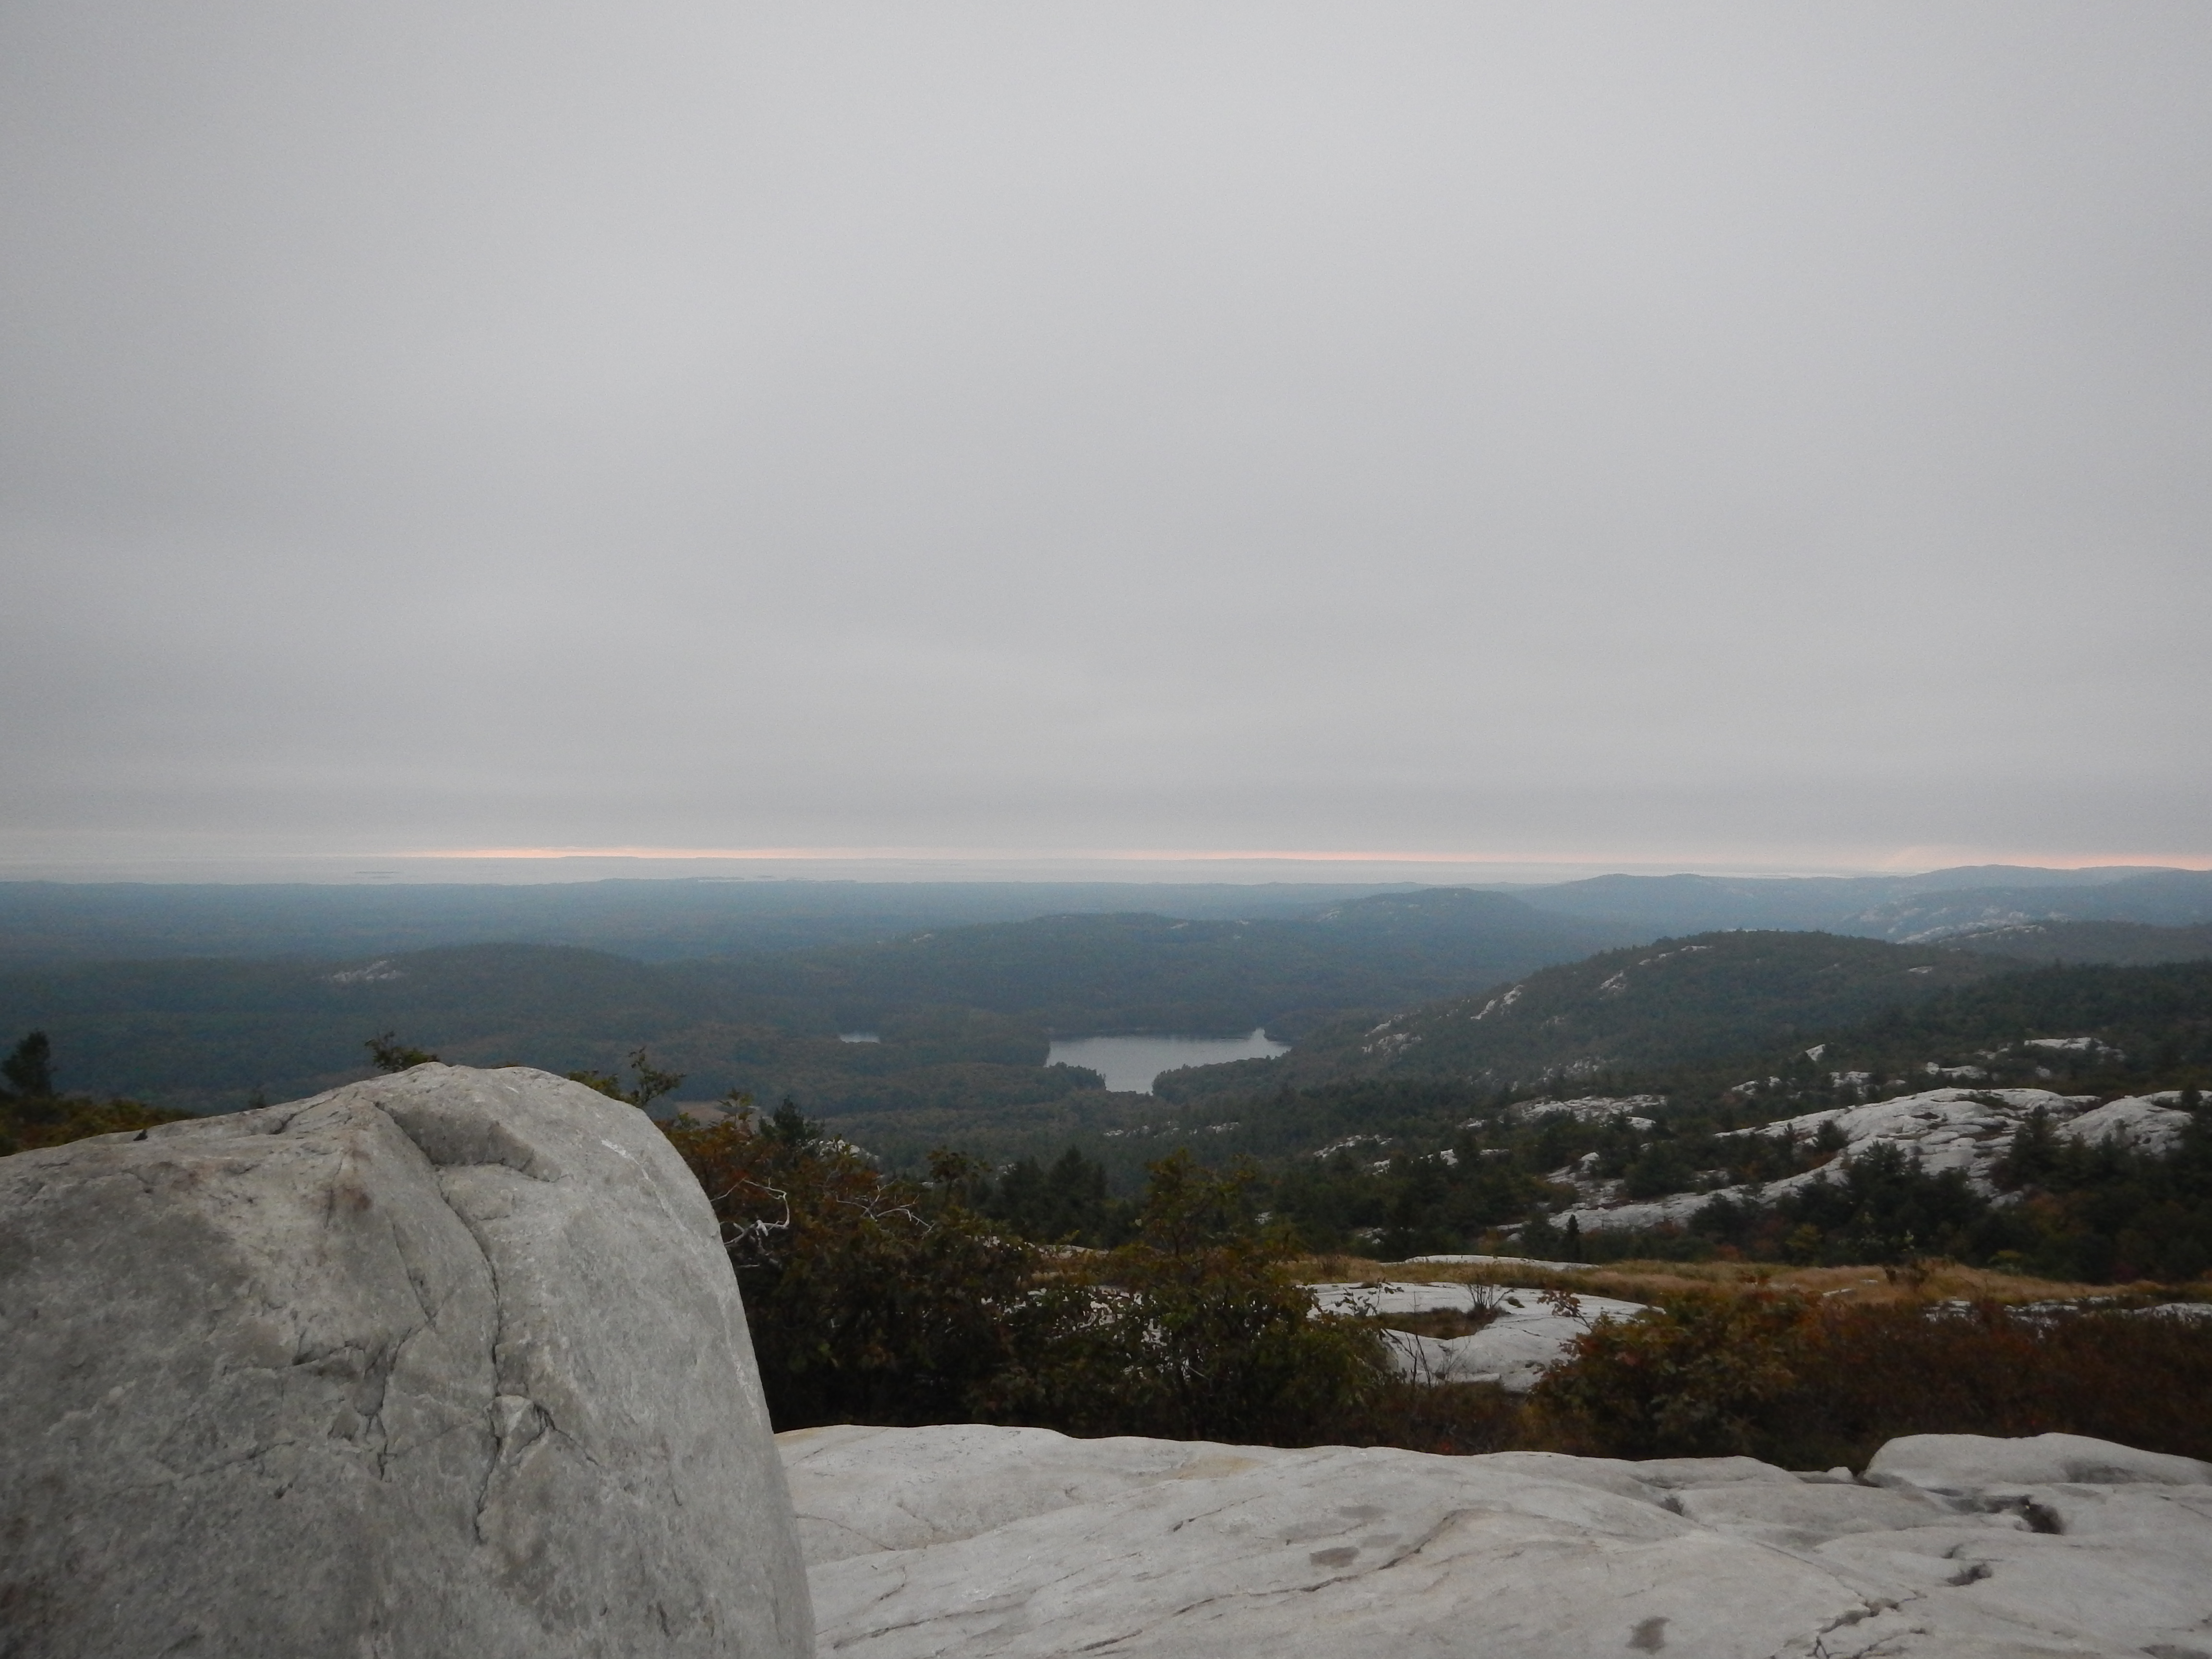 The view from Silver Peak.